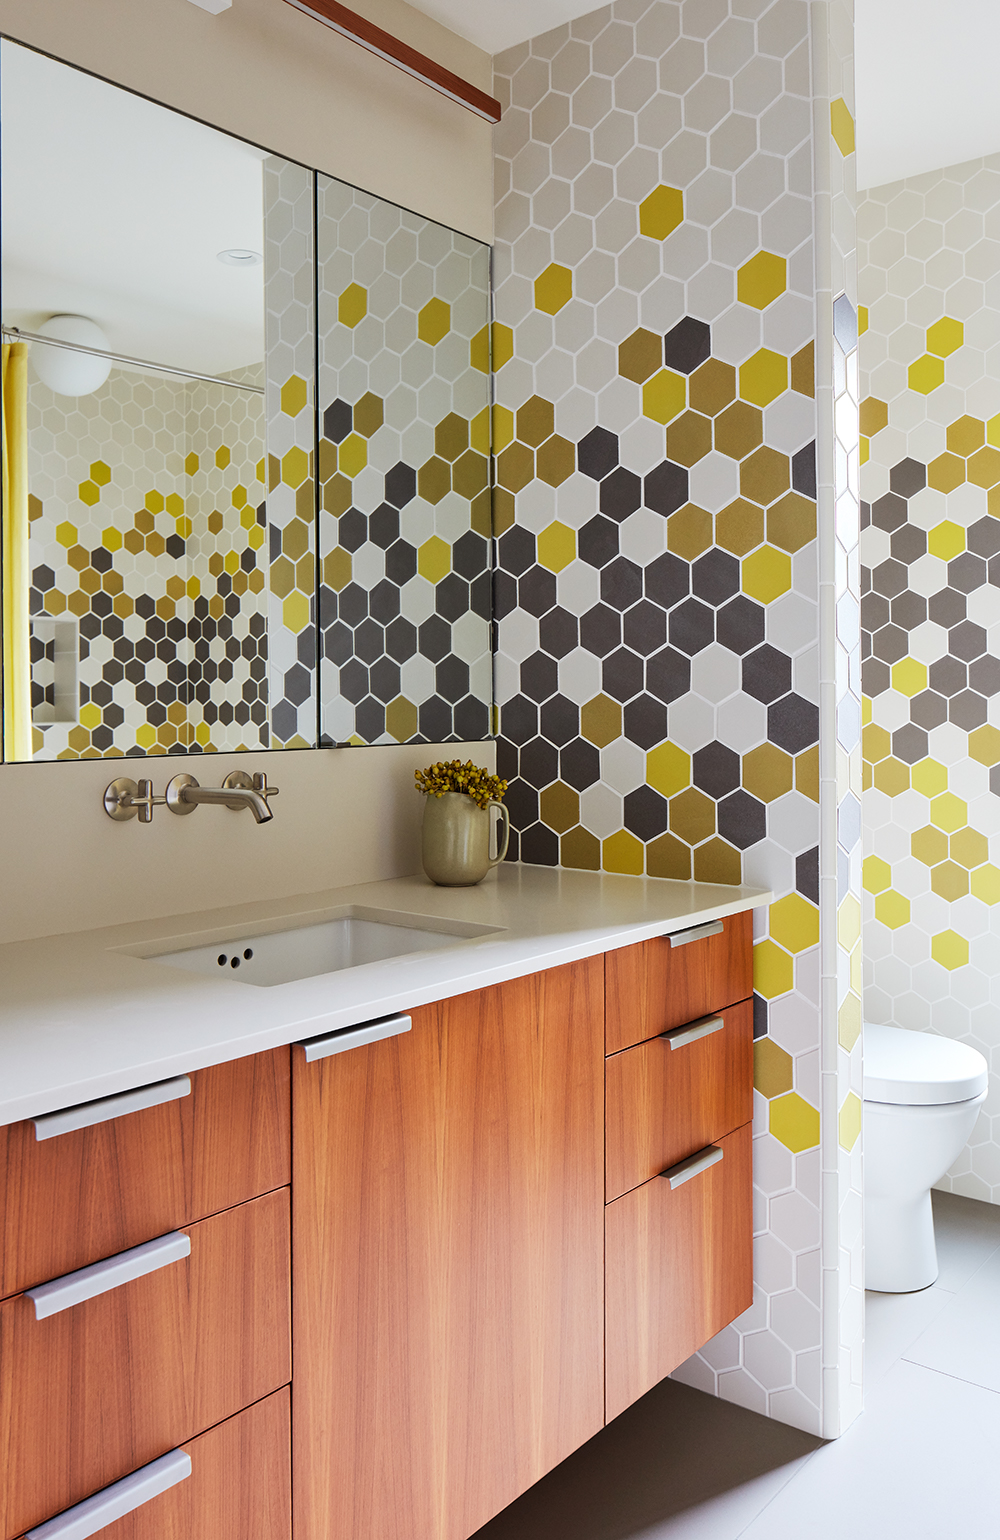 The son shares the guest bedroom with any visitors, and it imitates the cheerful patterns of his room with a hexagonal tile from Heath Ceramics.